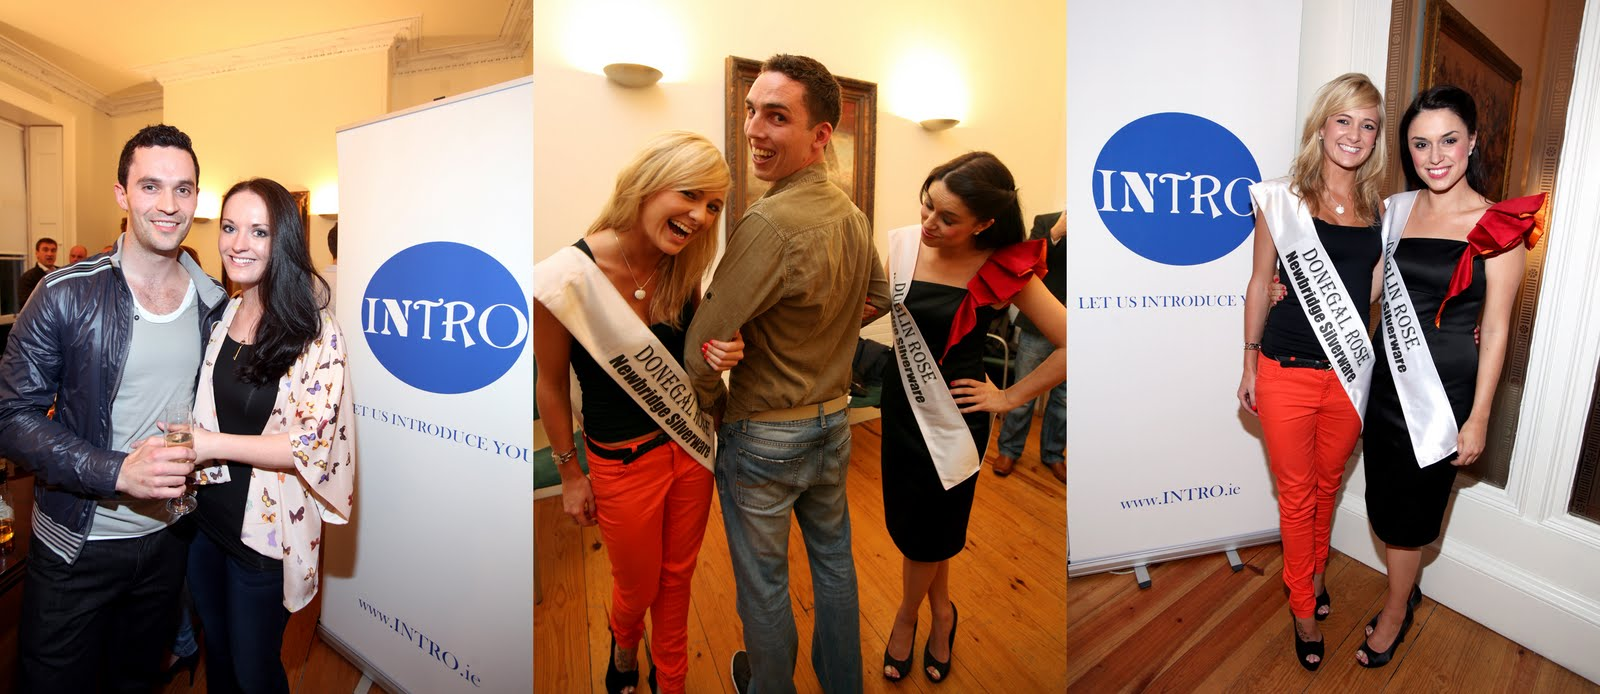 Intro Matchmaking and Dating Agency are teaming up with Dublin's ...